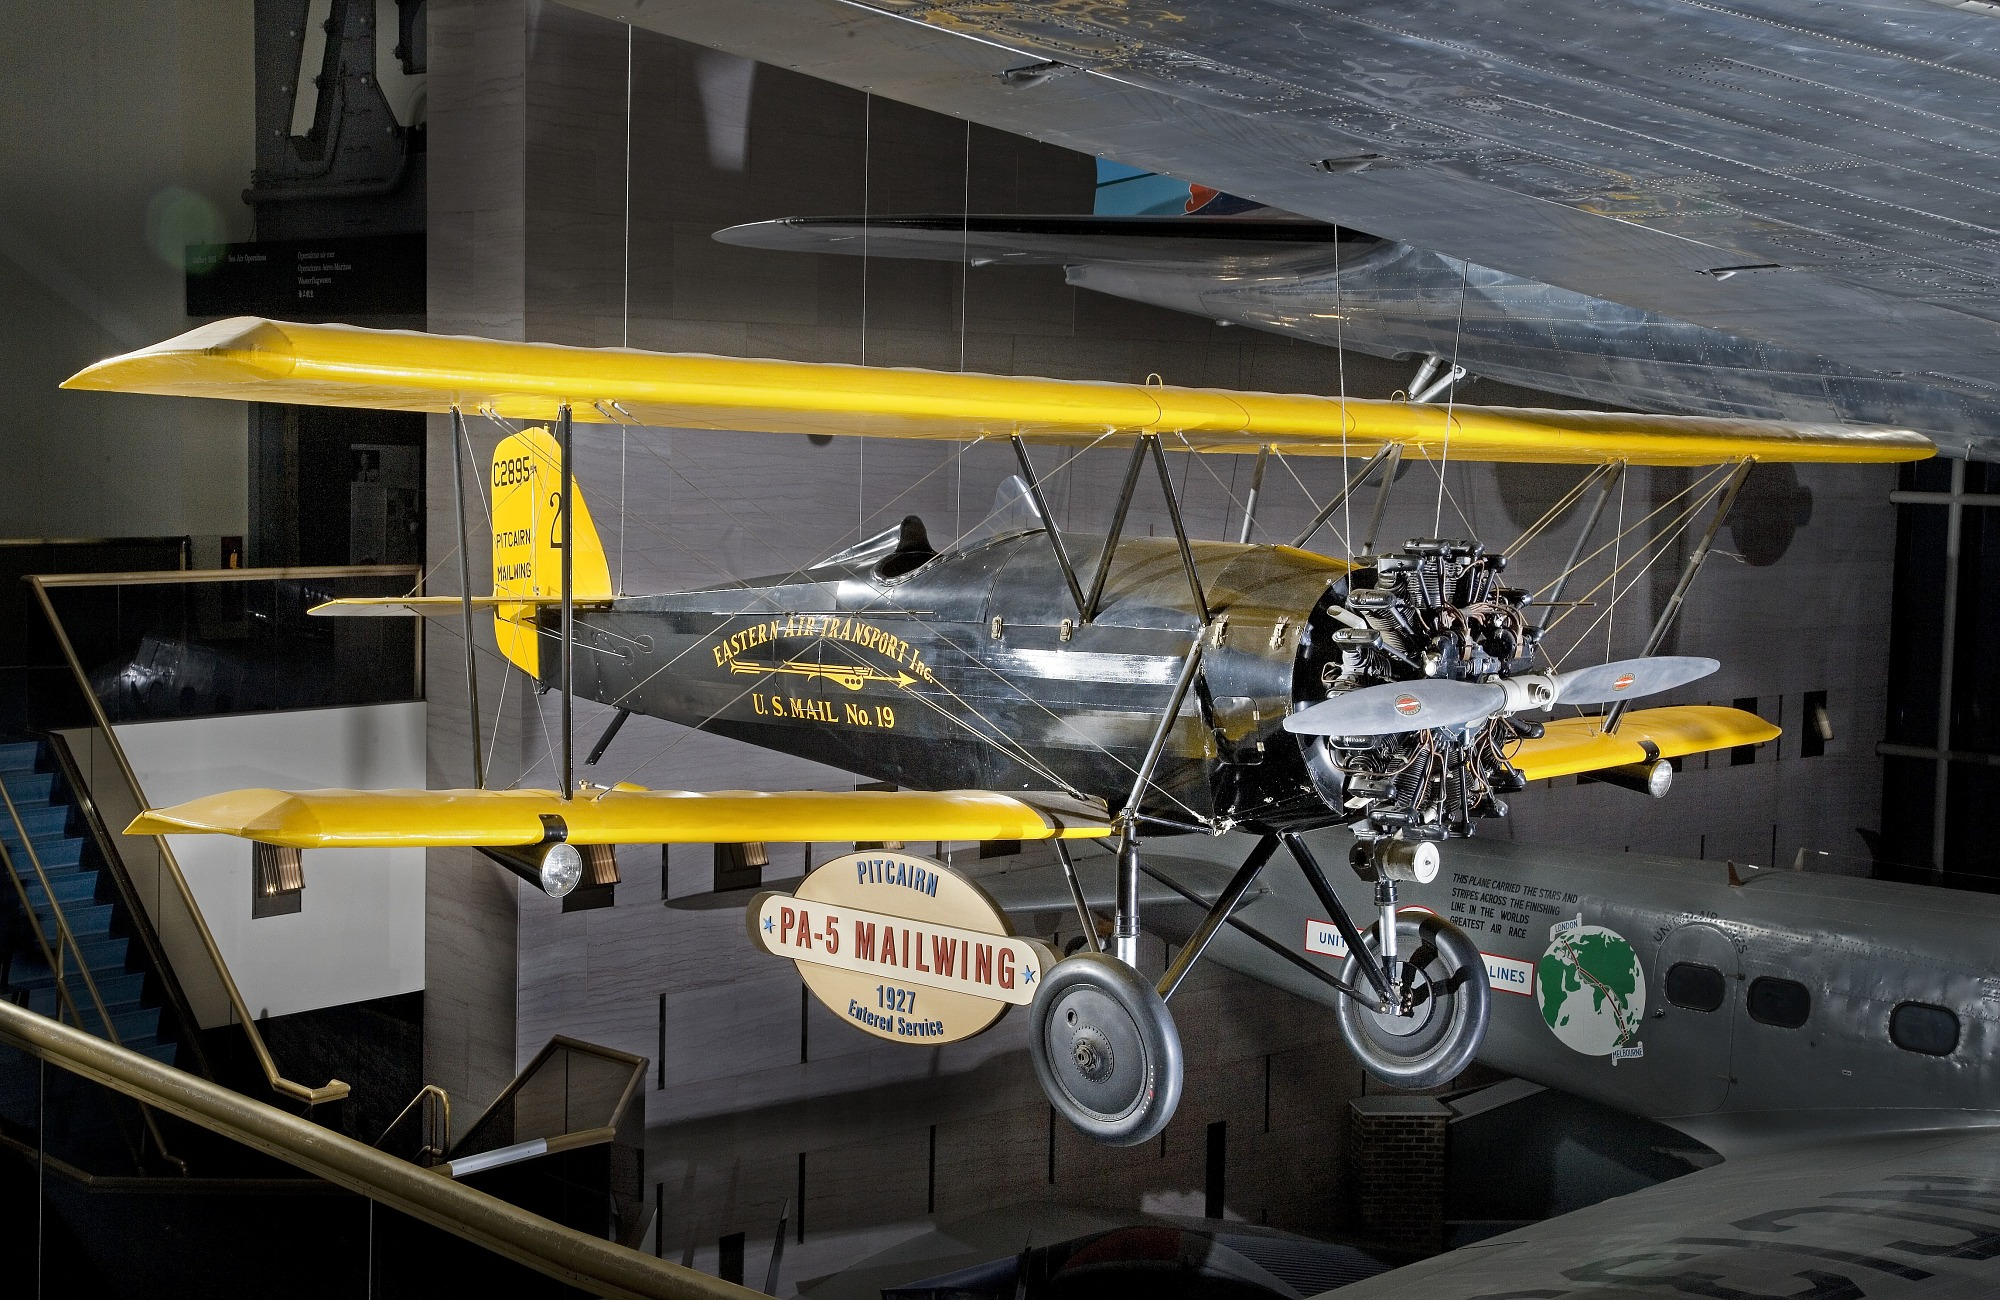 Image of : Pitcairn PA-5 Mailwing